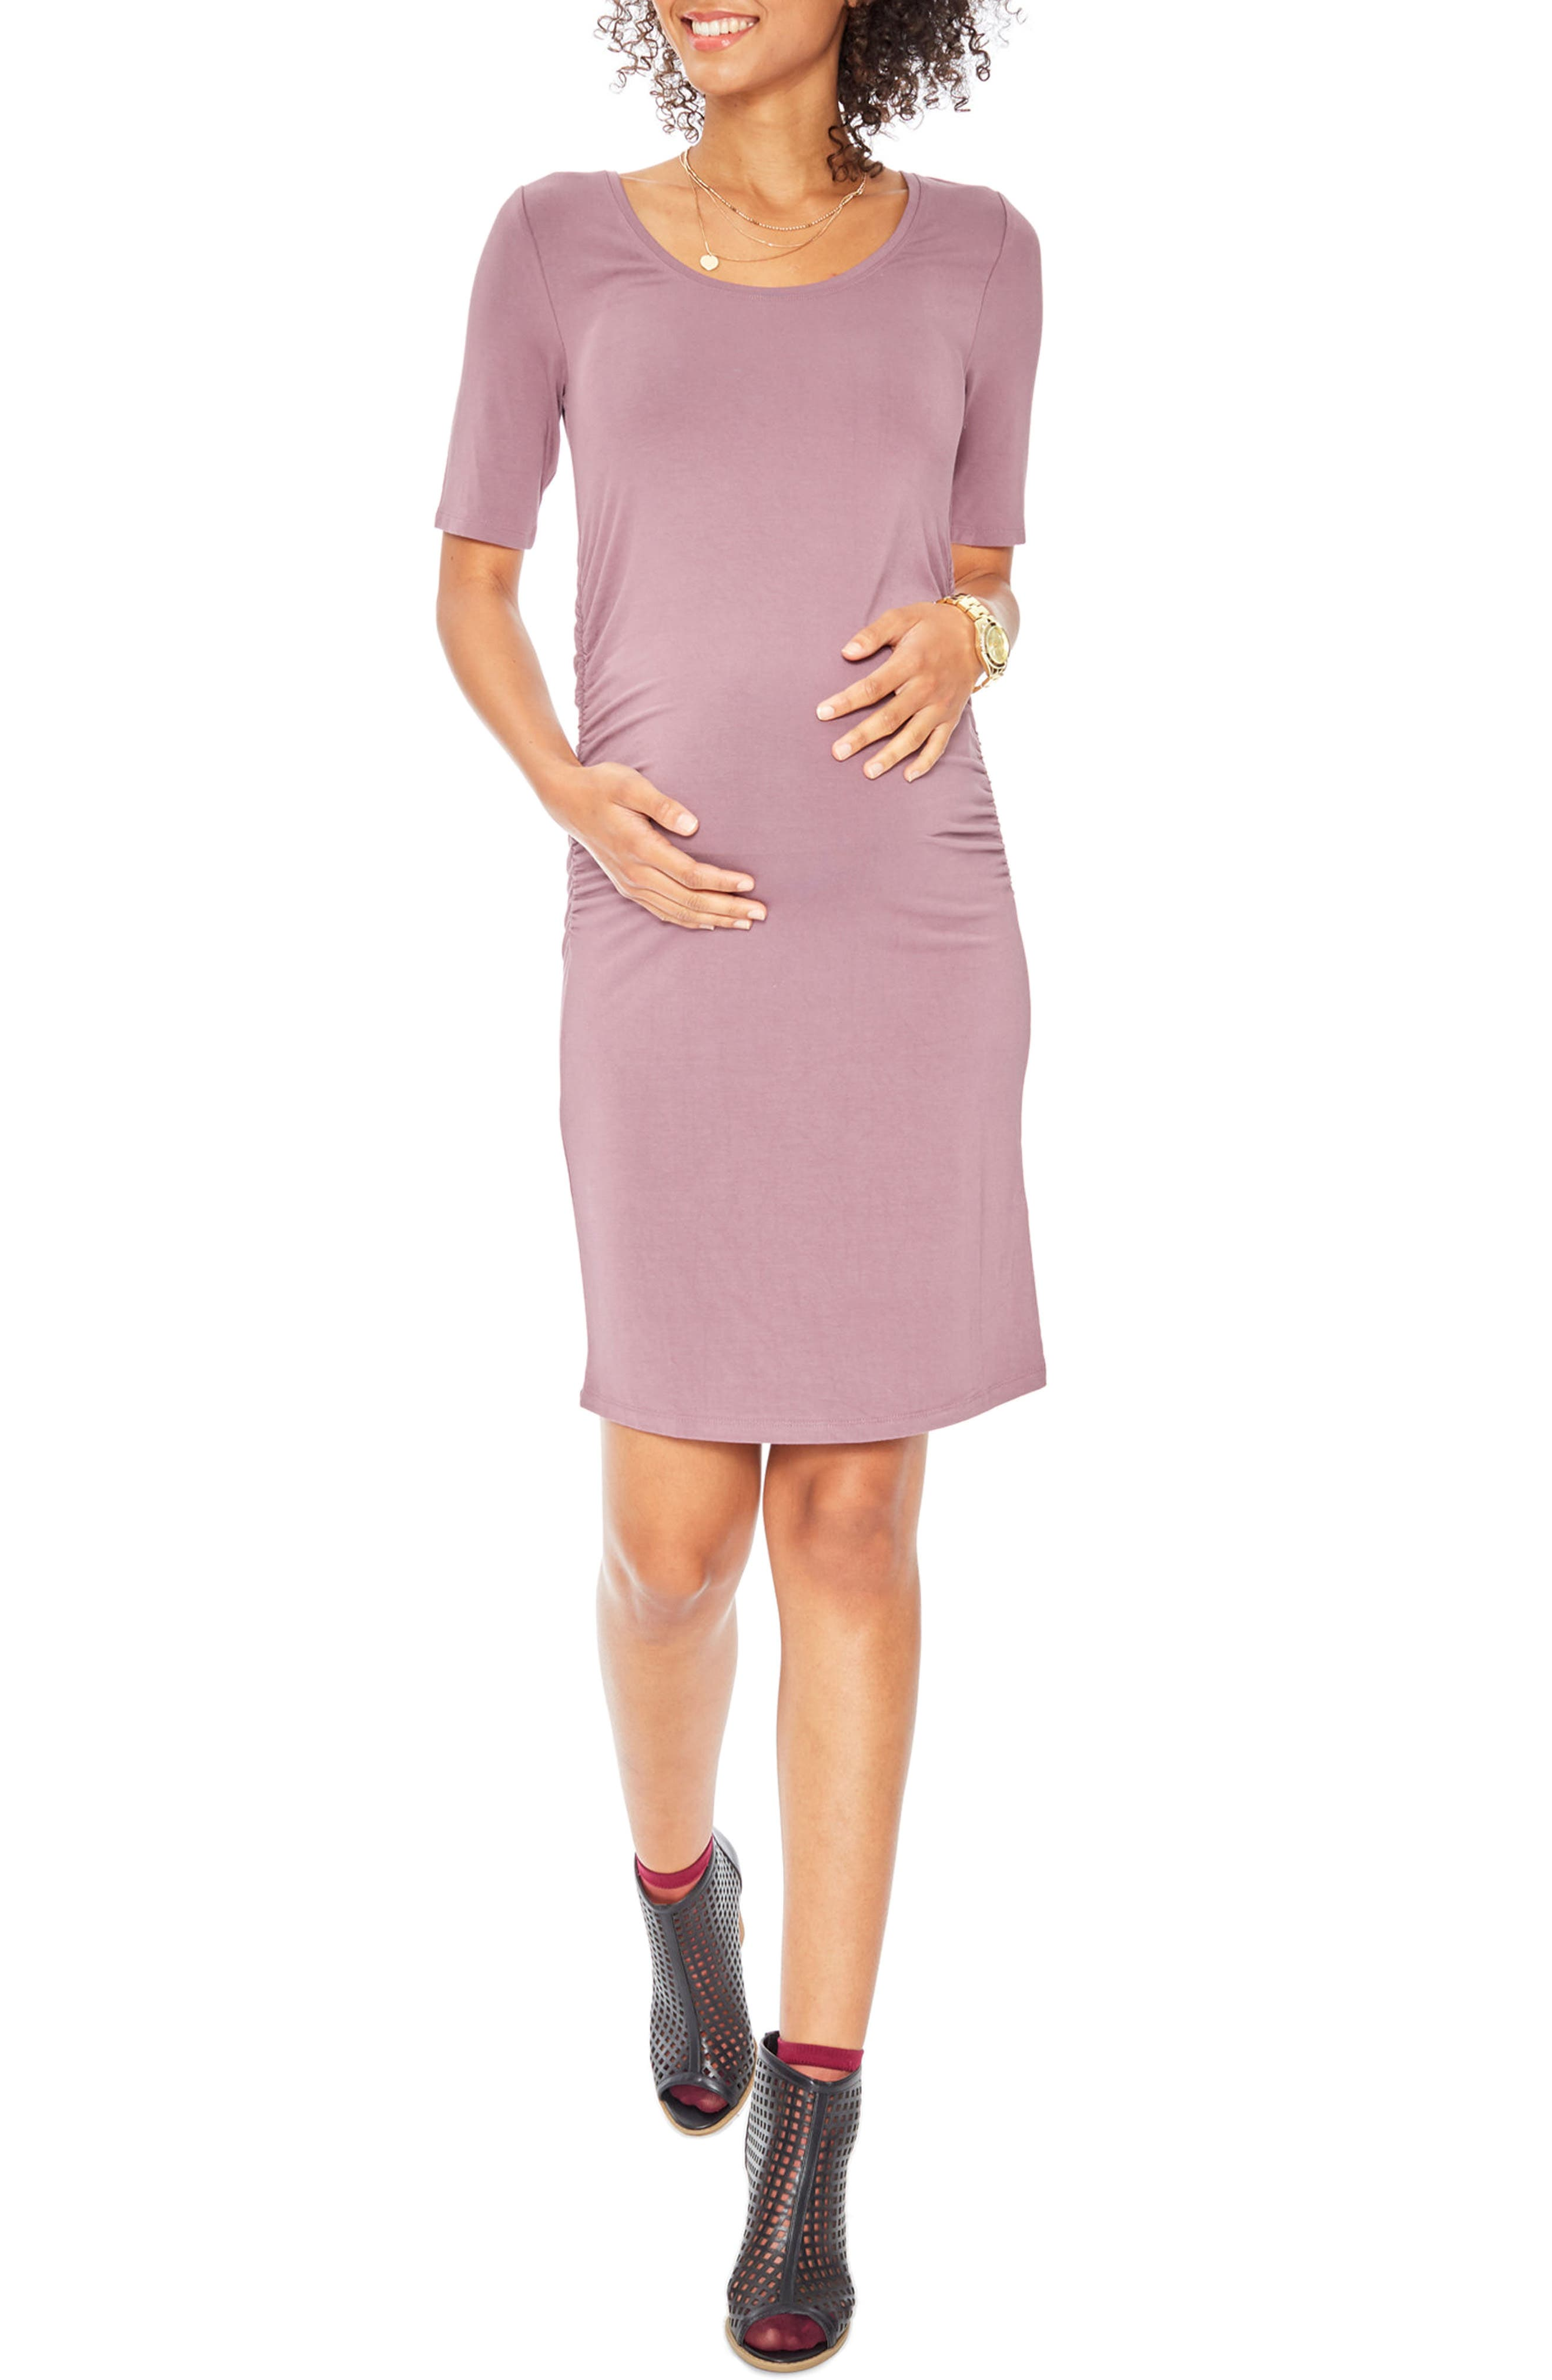 Ruth Maternity Dress,                             Main thumbnail 1, color,                             Stone Rose